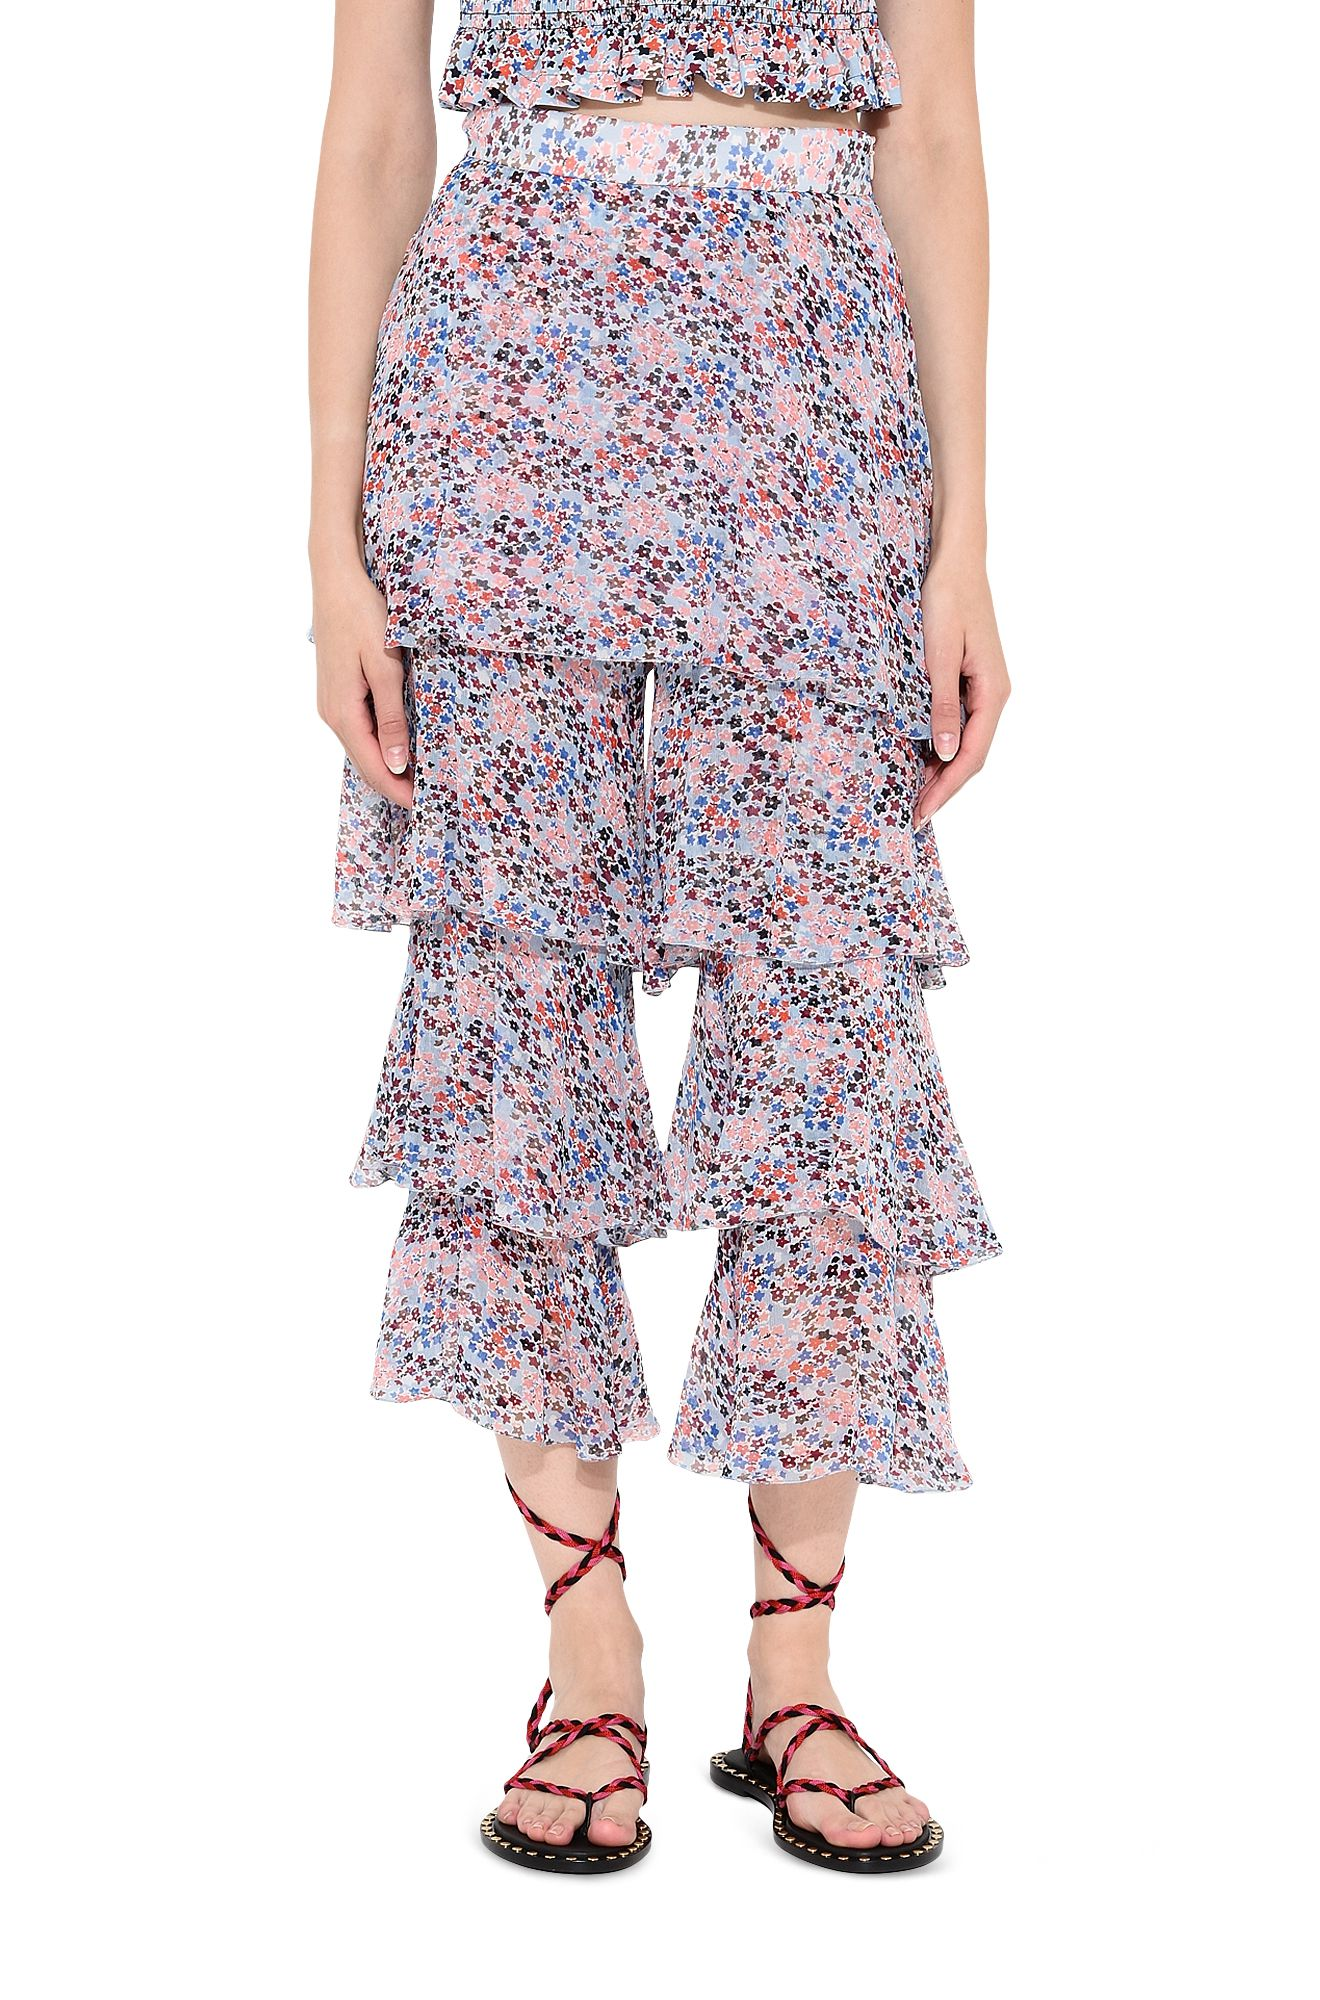 PHILOSOPHY di LORENZO SERAFINI SKIRT D Wraparound skirt with flower micro pattern r